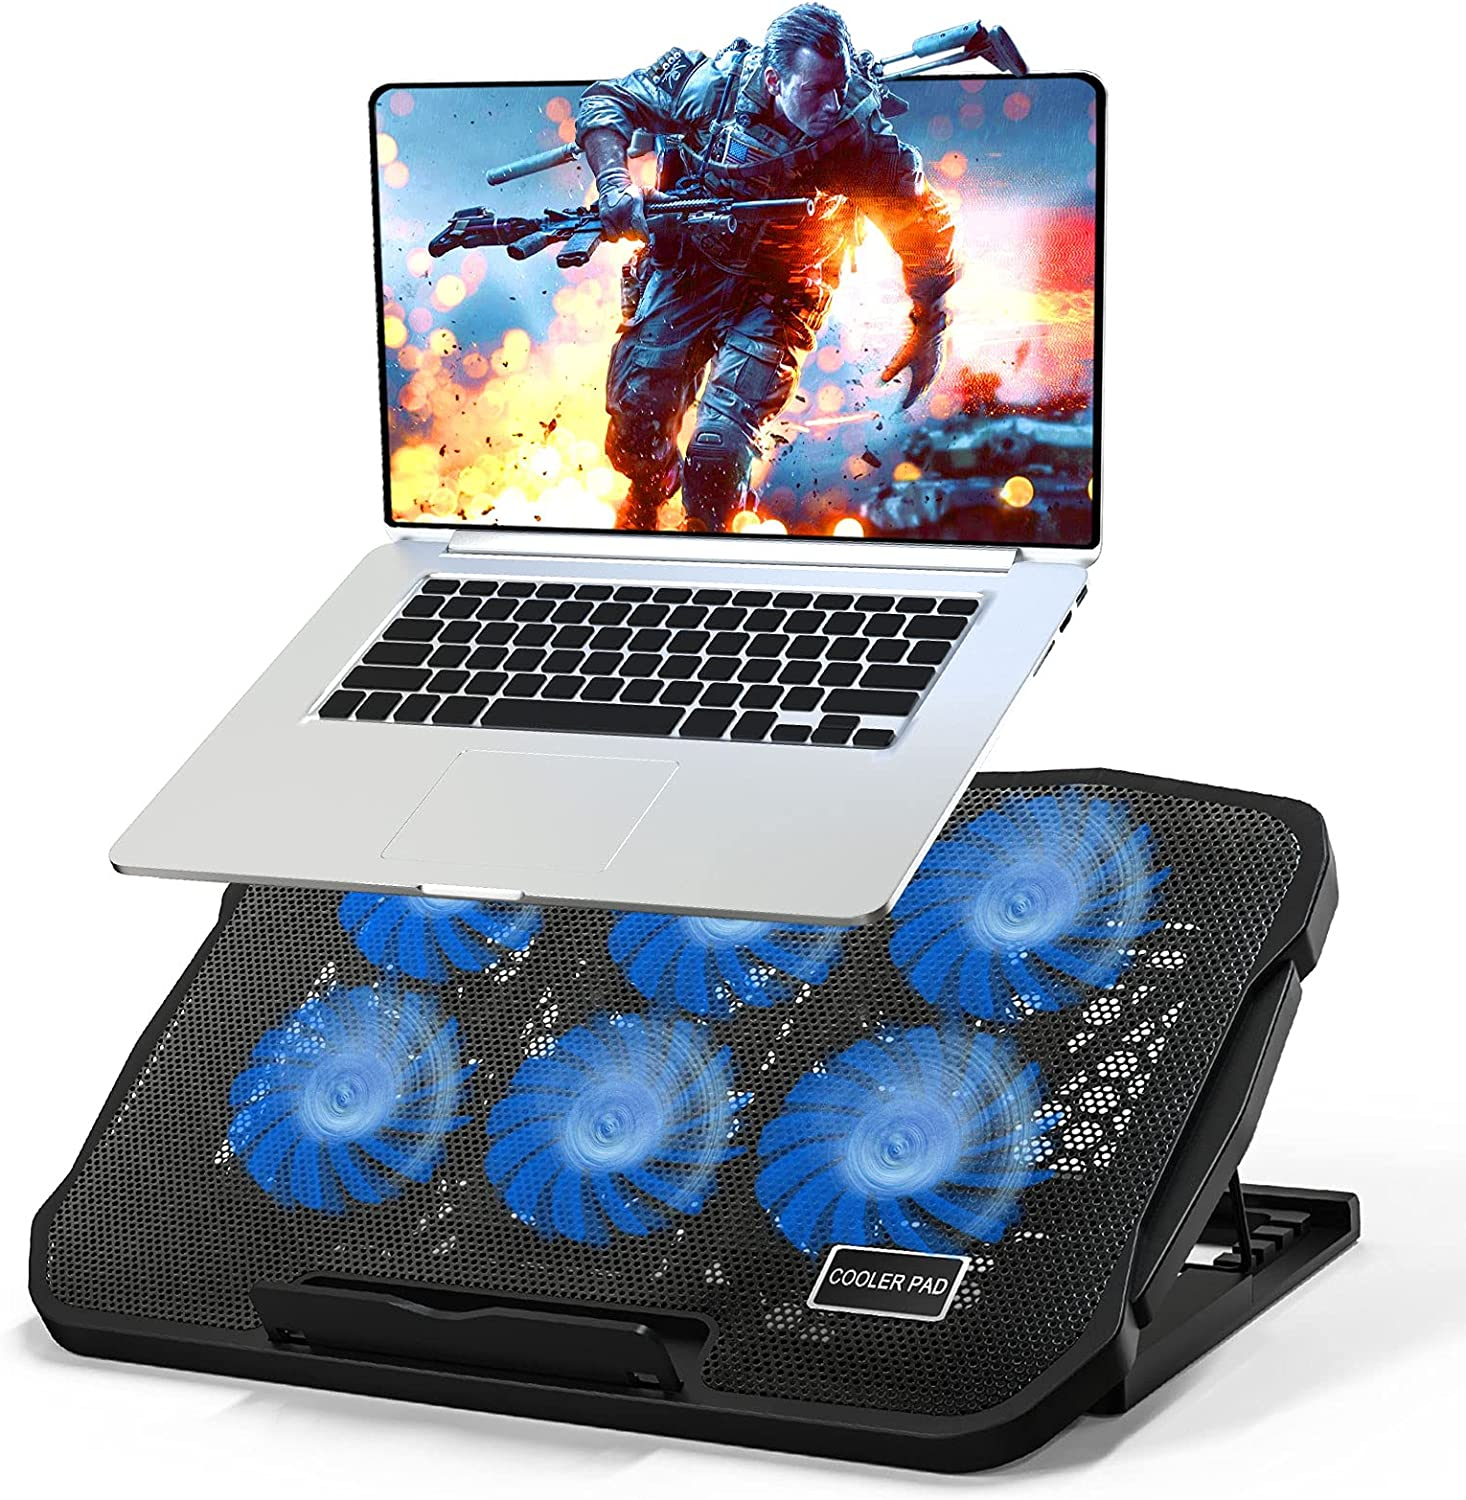 Laptop Cooling Pad, Tendak Gaming Laptop Cooler Stand with 6 Quiet Cooling Fans, 5 Stand Height Adjustable, Dual USB 2.0 Ports, Adjustable The Wind Speed for 11-17